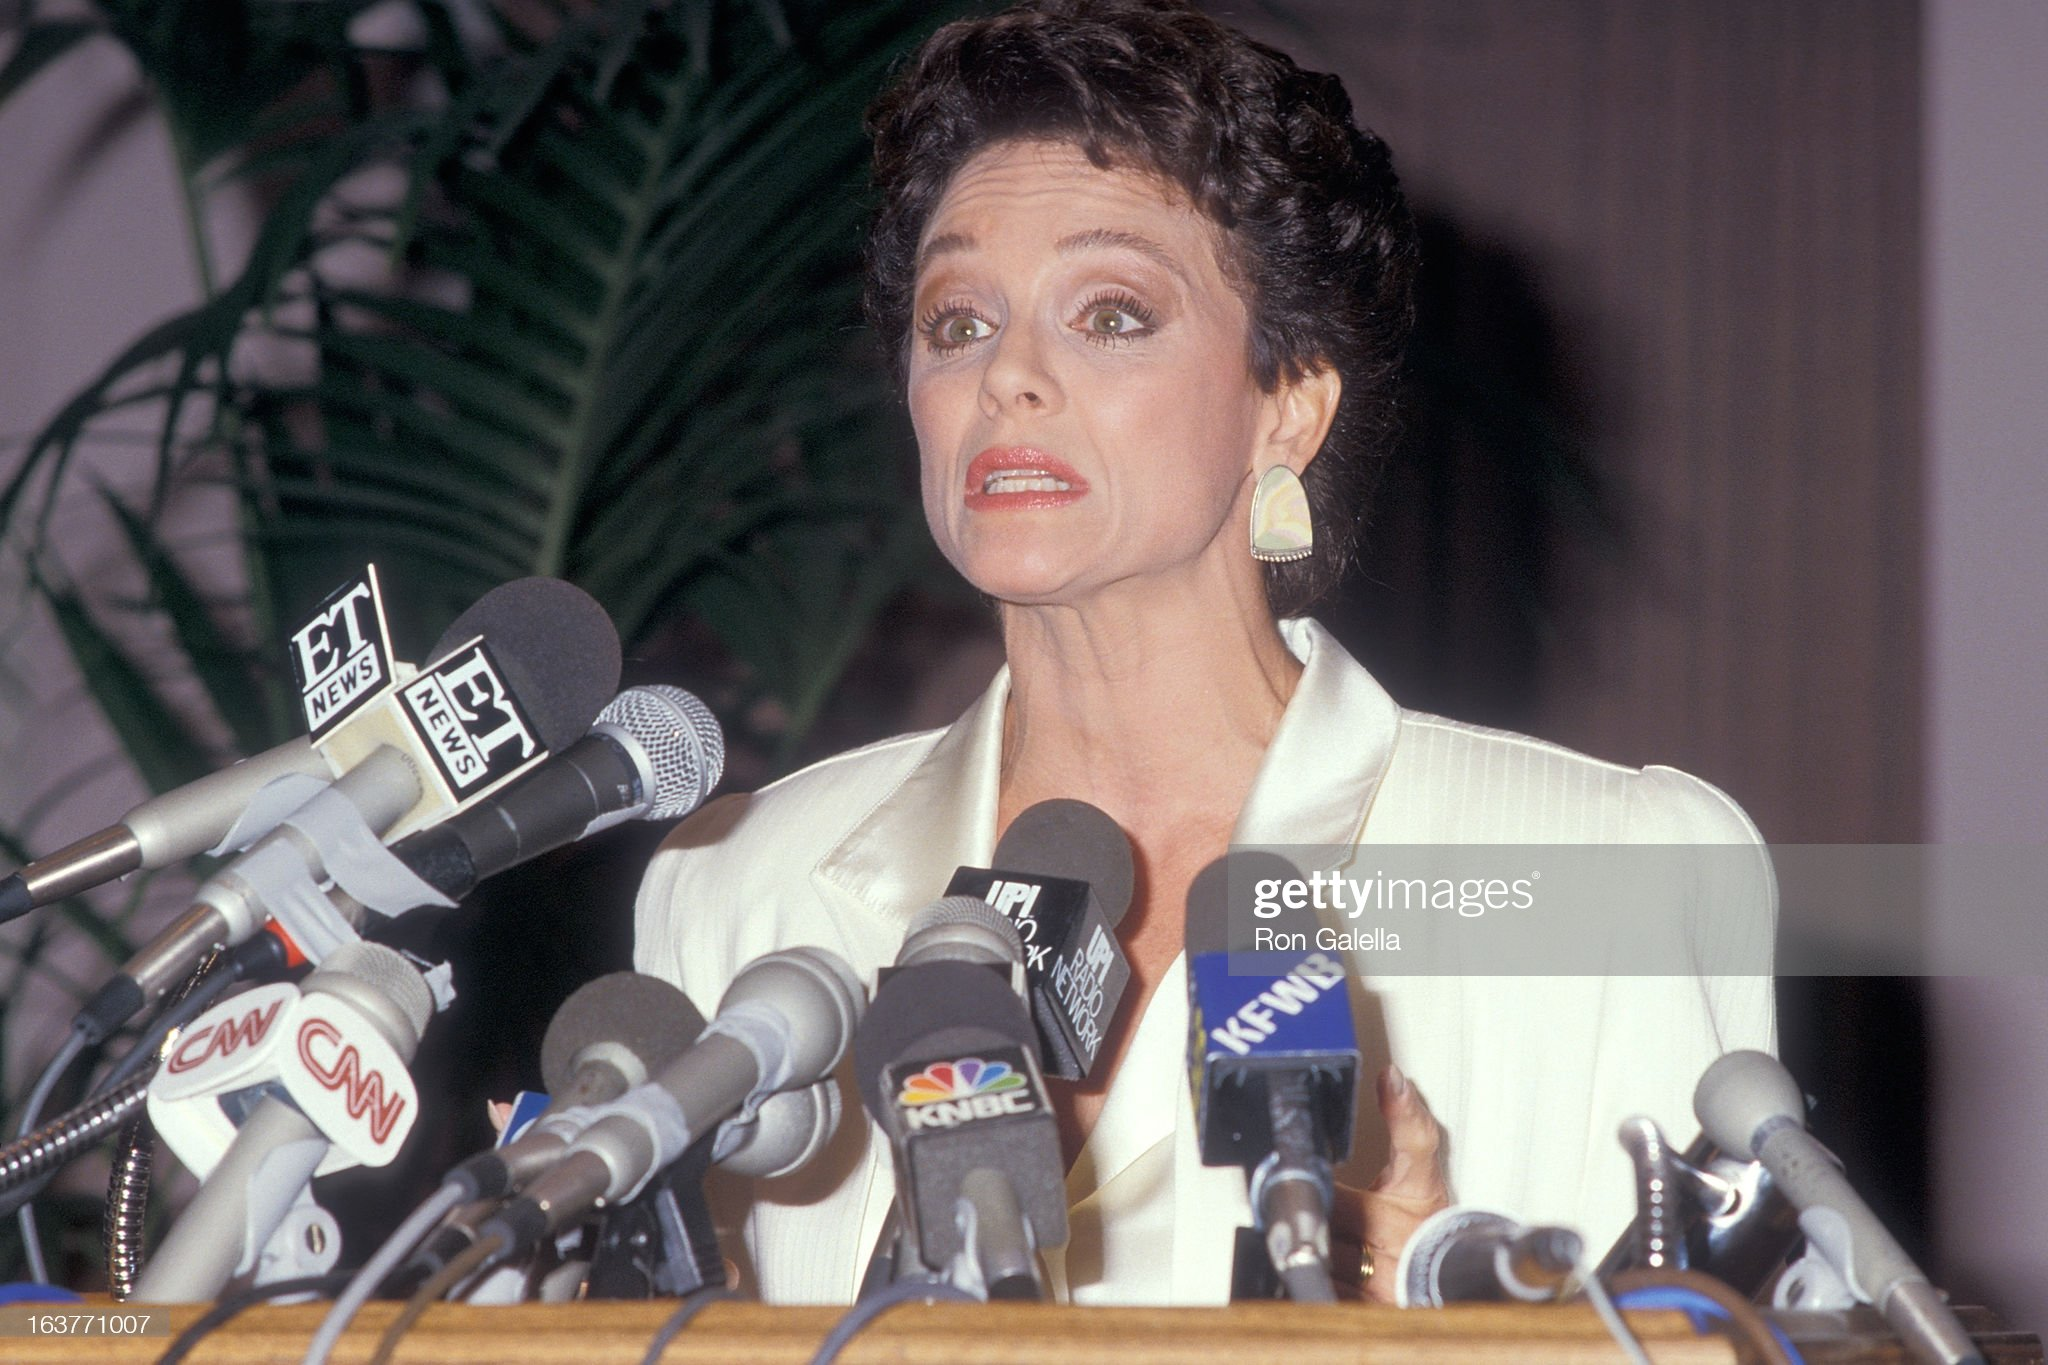 actress-valerie-harper-addresses-the-press-to-speak-about-being-fired-picture-id163771007